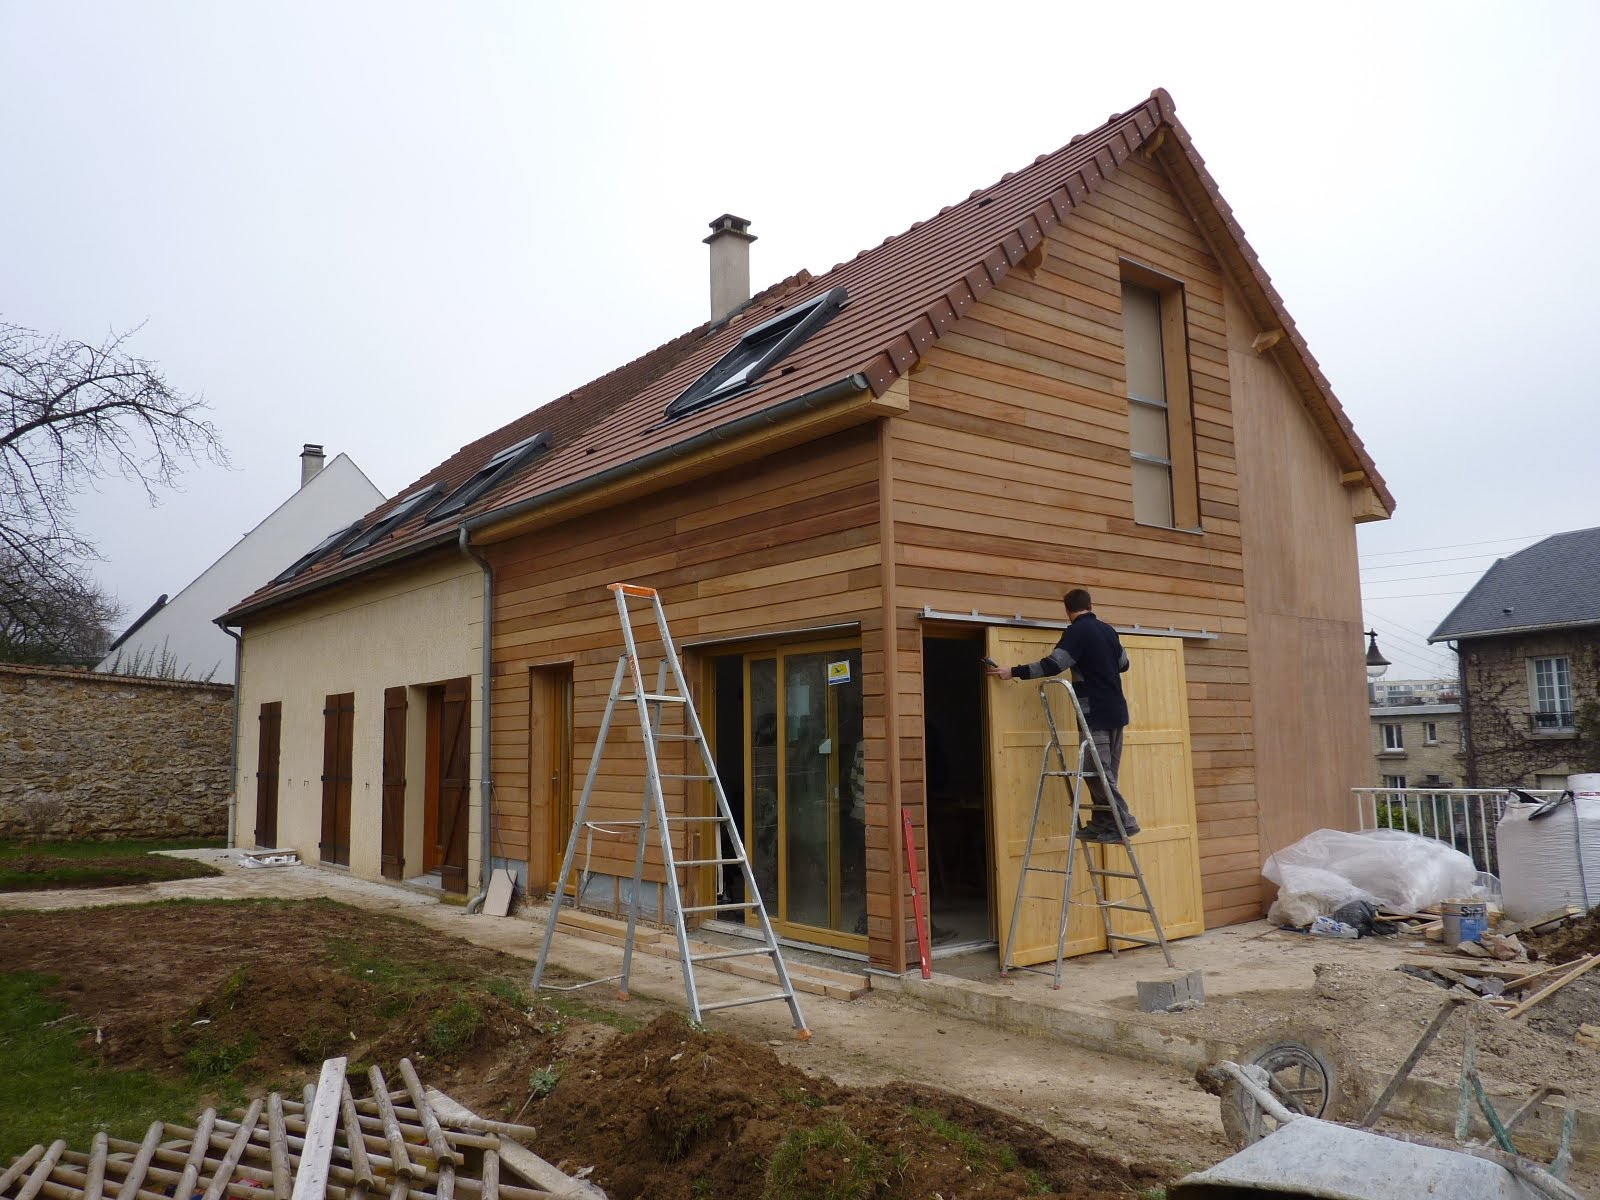 Modern architecture group extension en bois yvelines 78 for Extension en bois